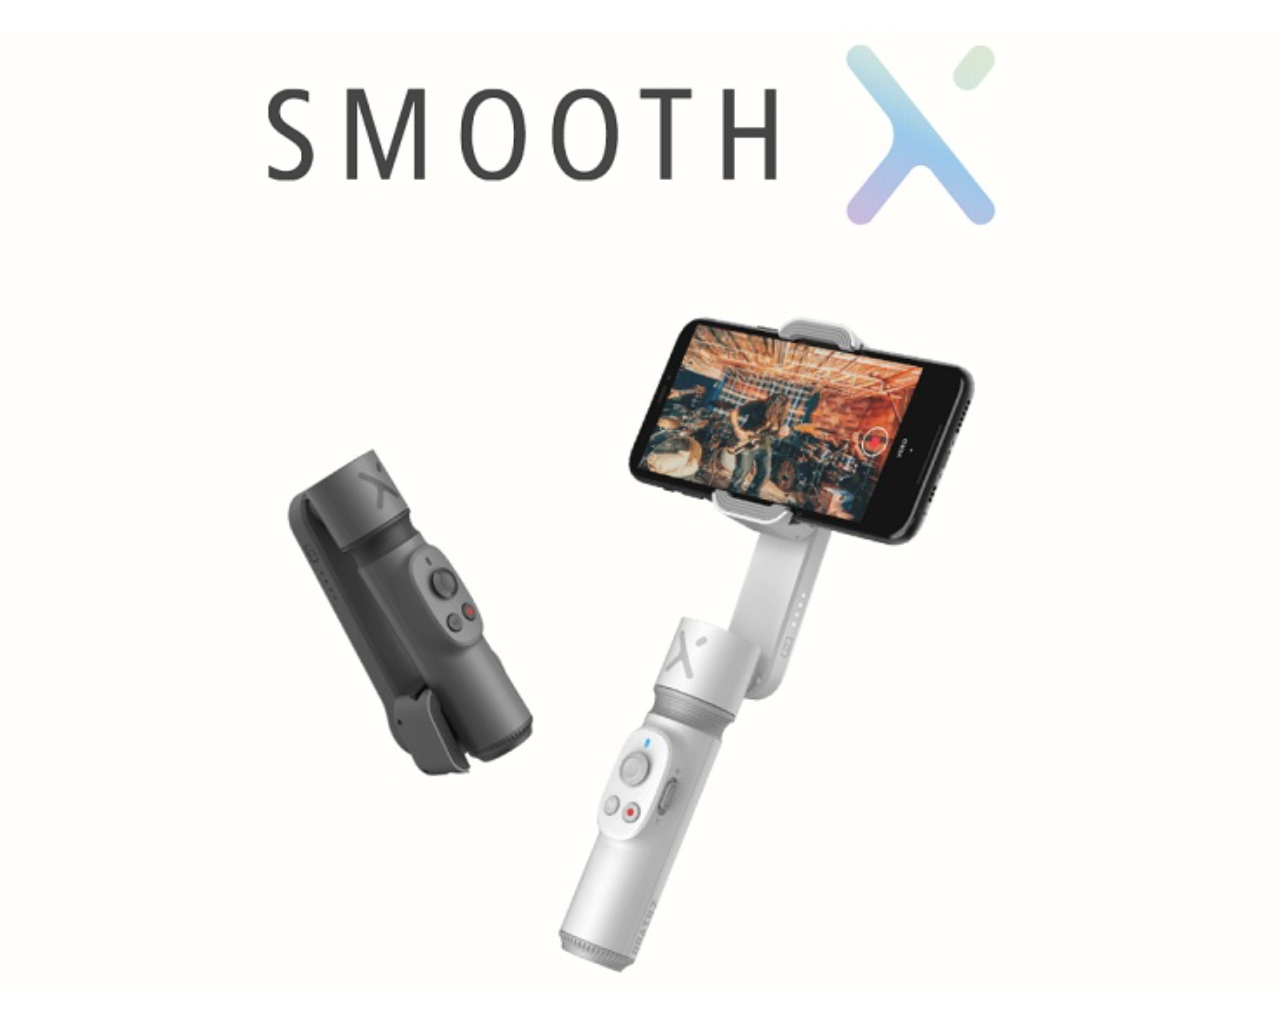 Zhiyun Smooth X now offers the mobile video stabilisation with 2-Axis